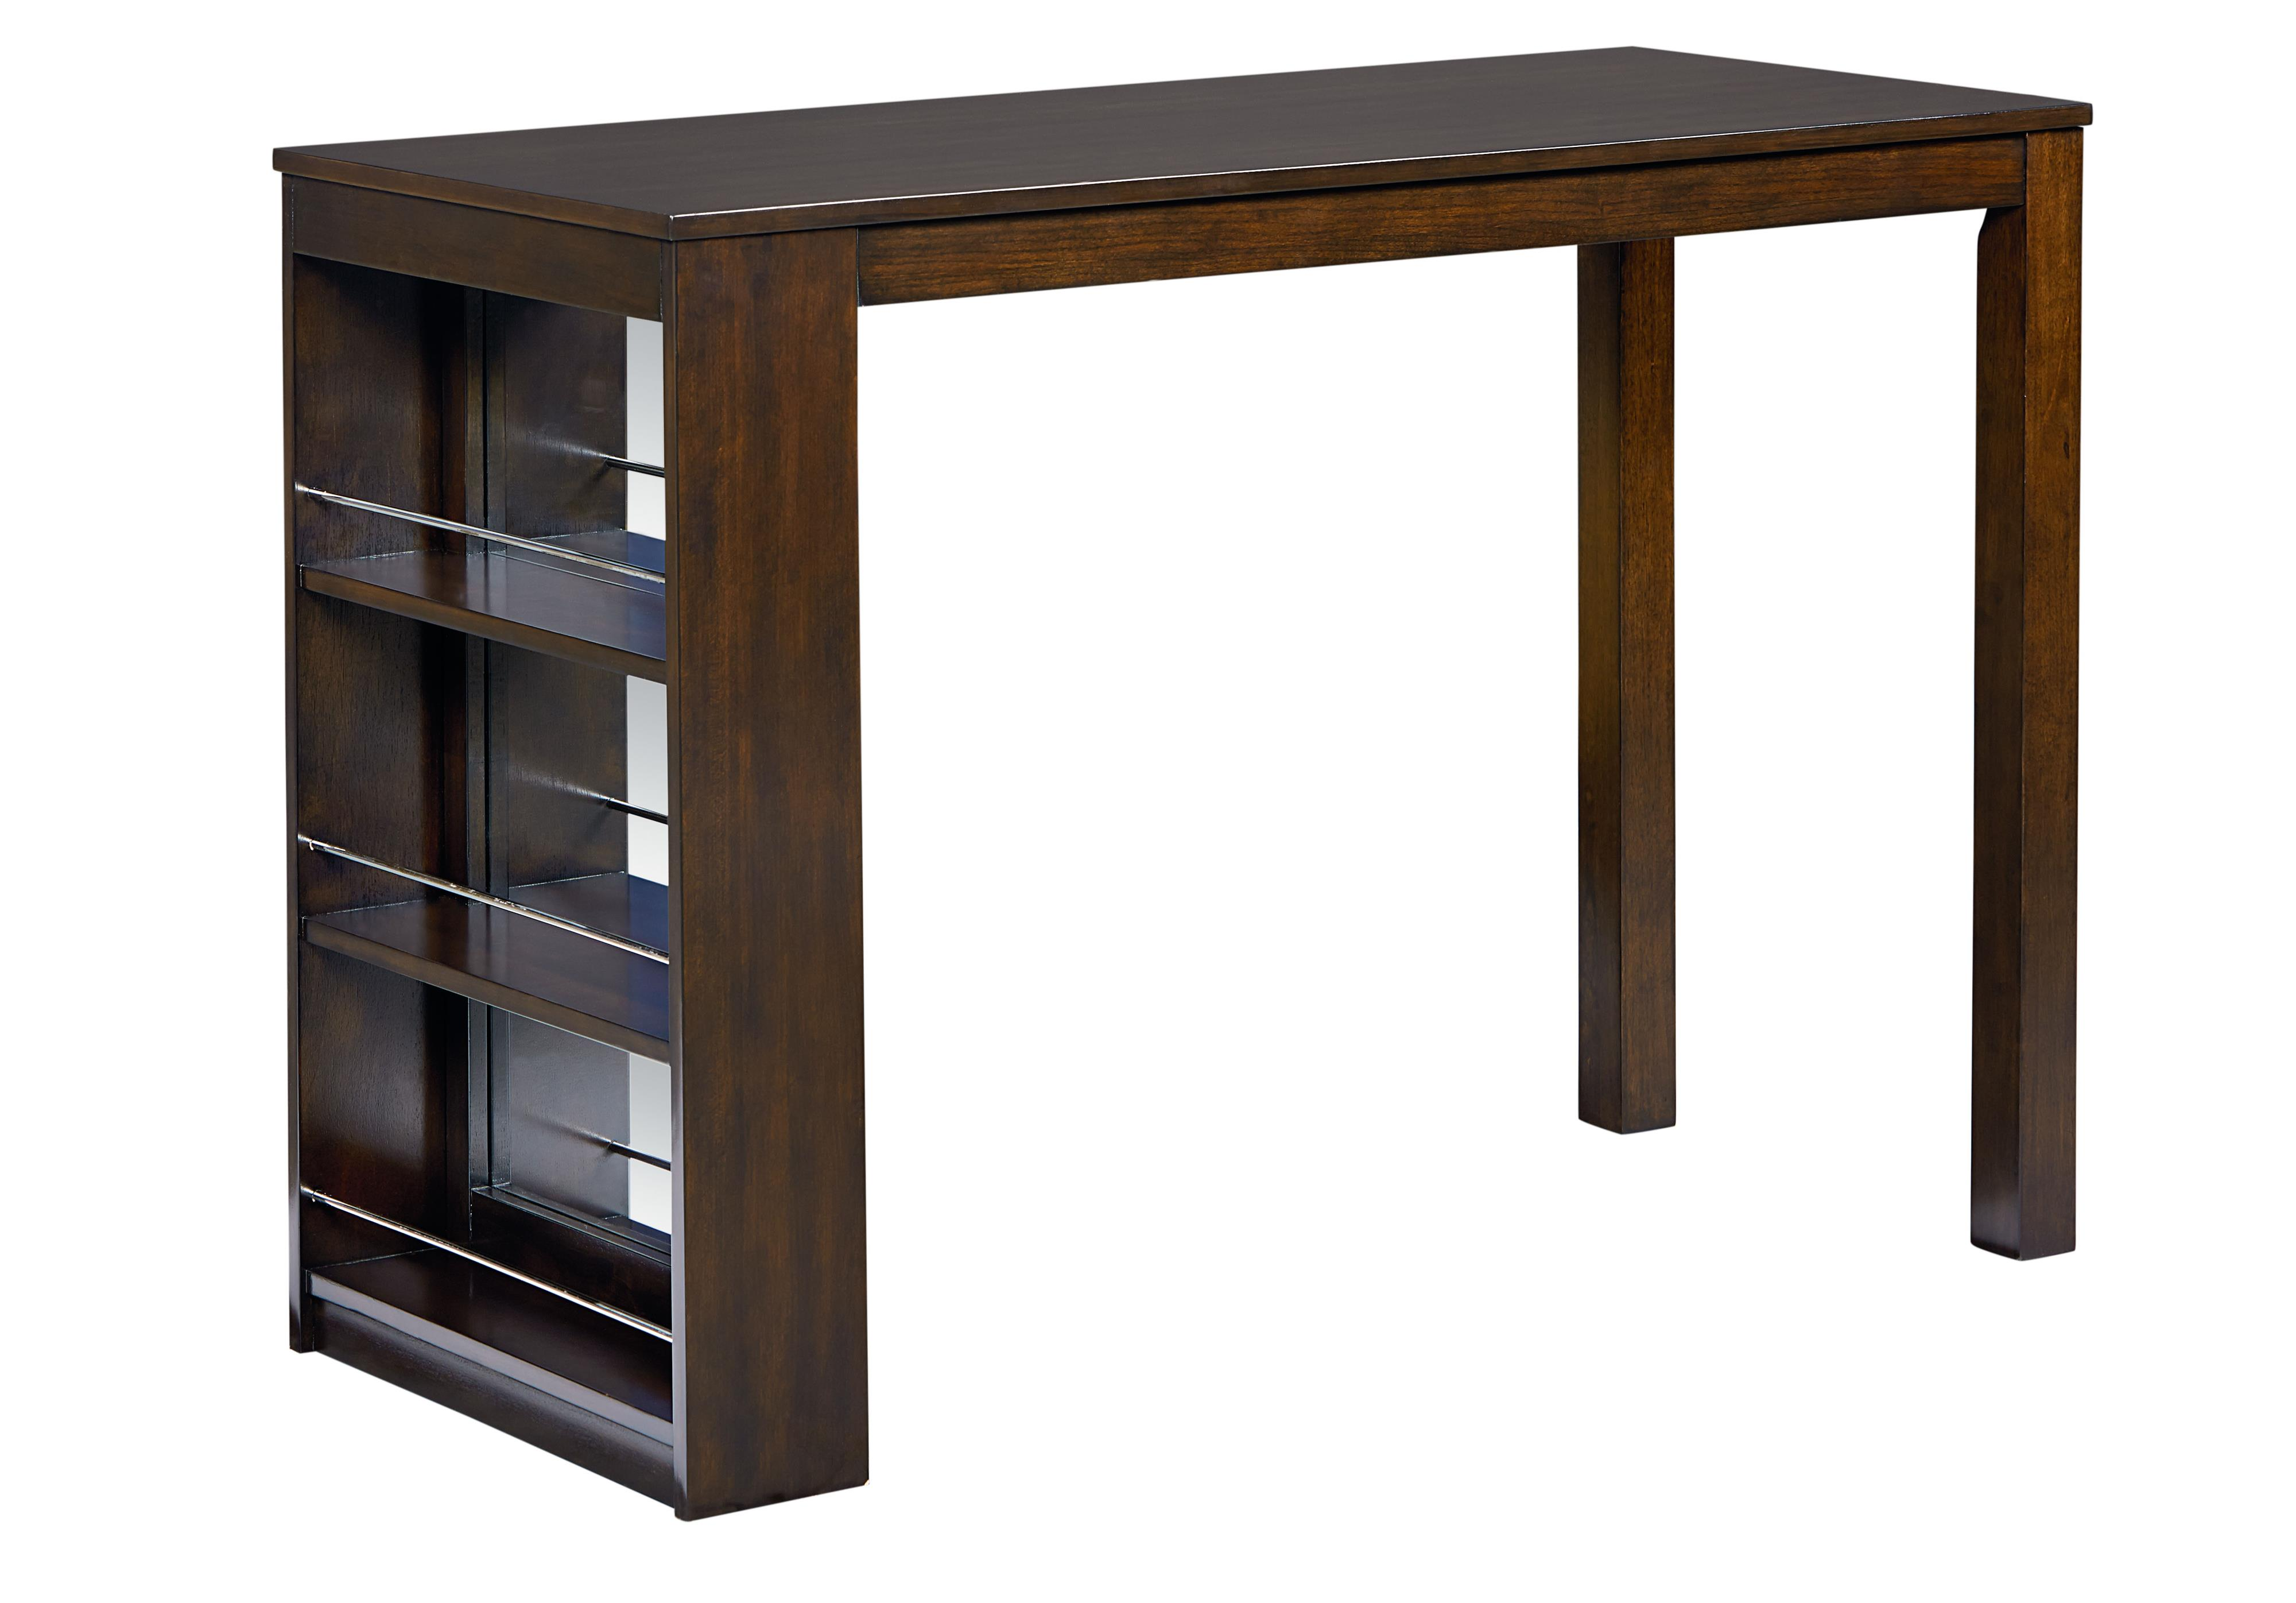 Standard furniture porter modern counter height table with for Table 6 kitchen and bar canton ohio